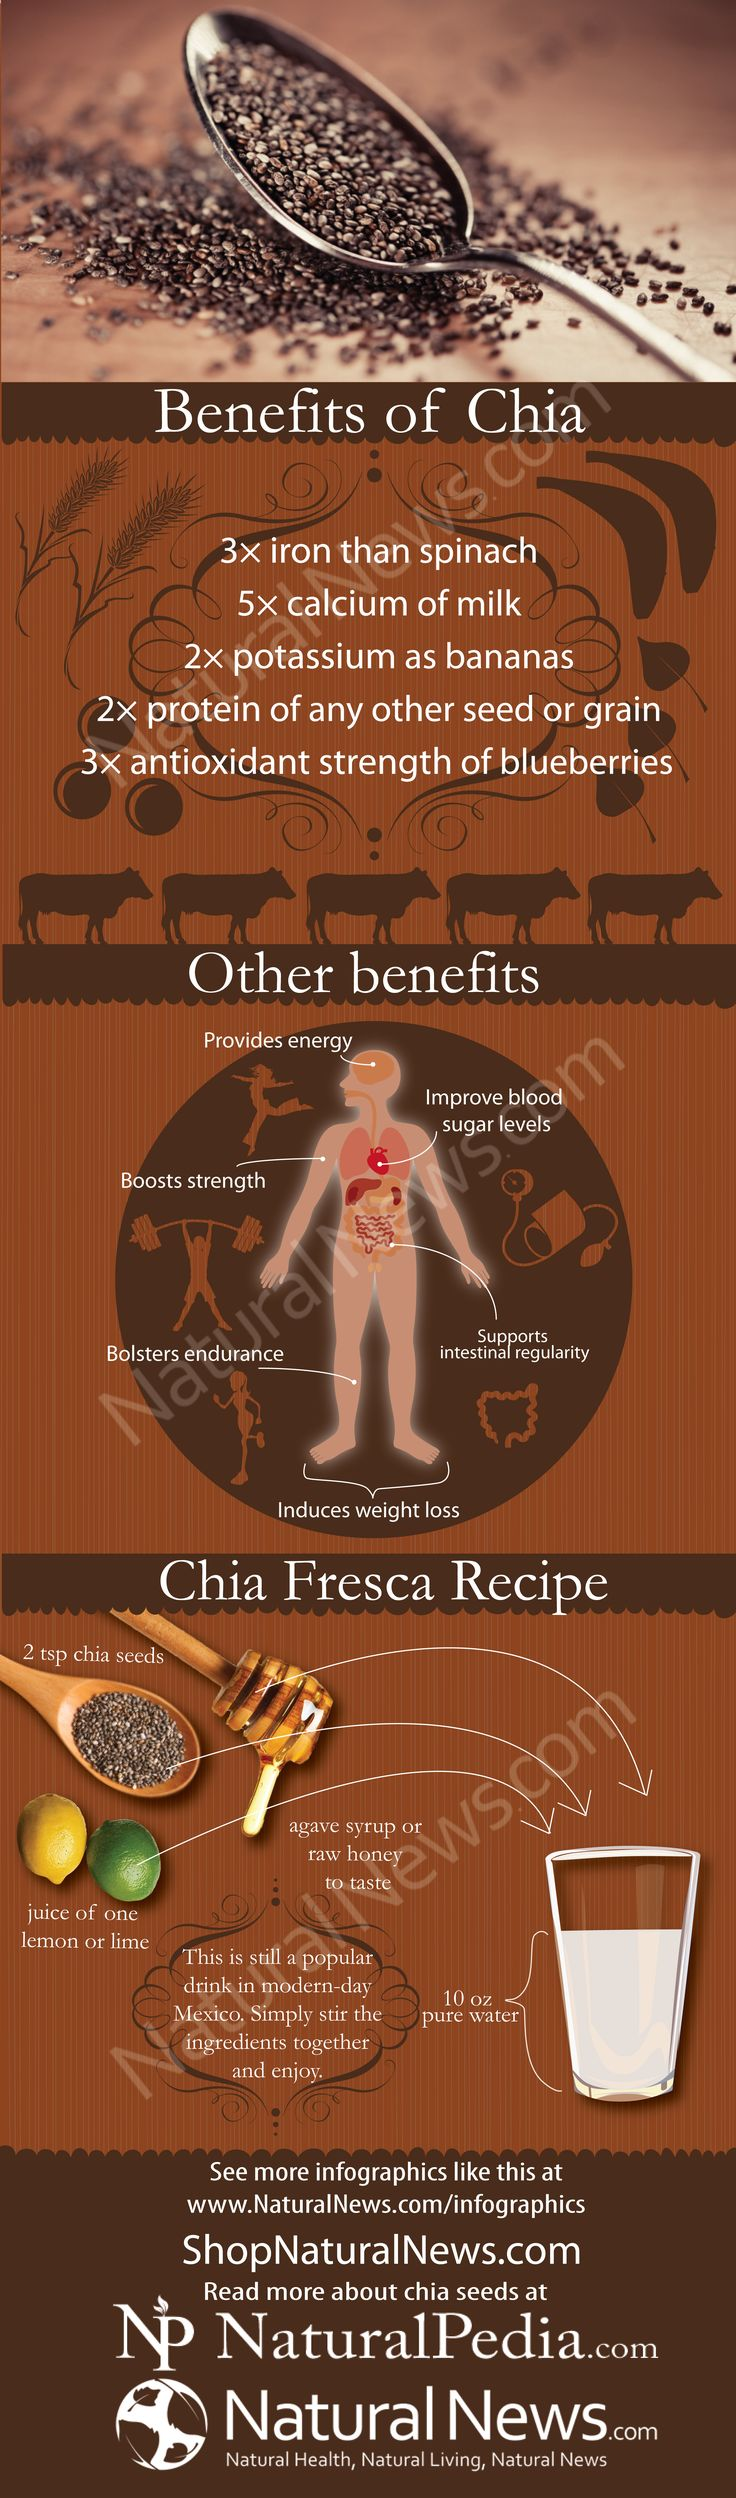 Chia seeds are the ultimate survival food for long-term storage